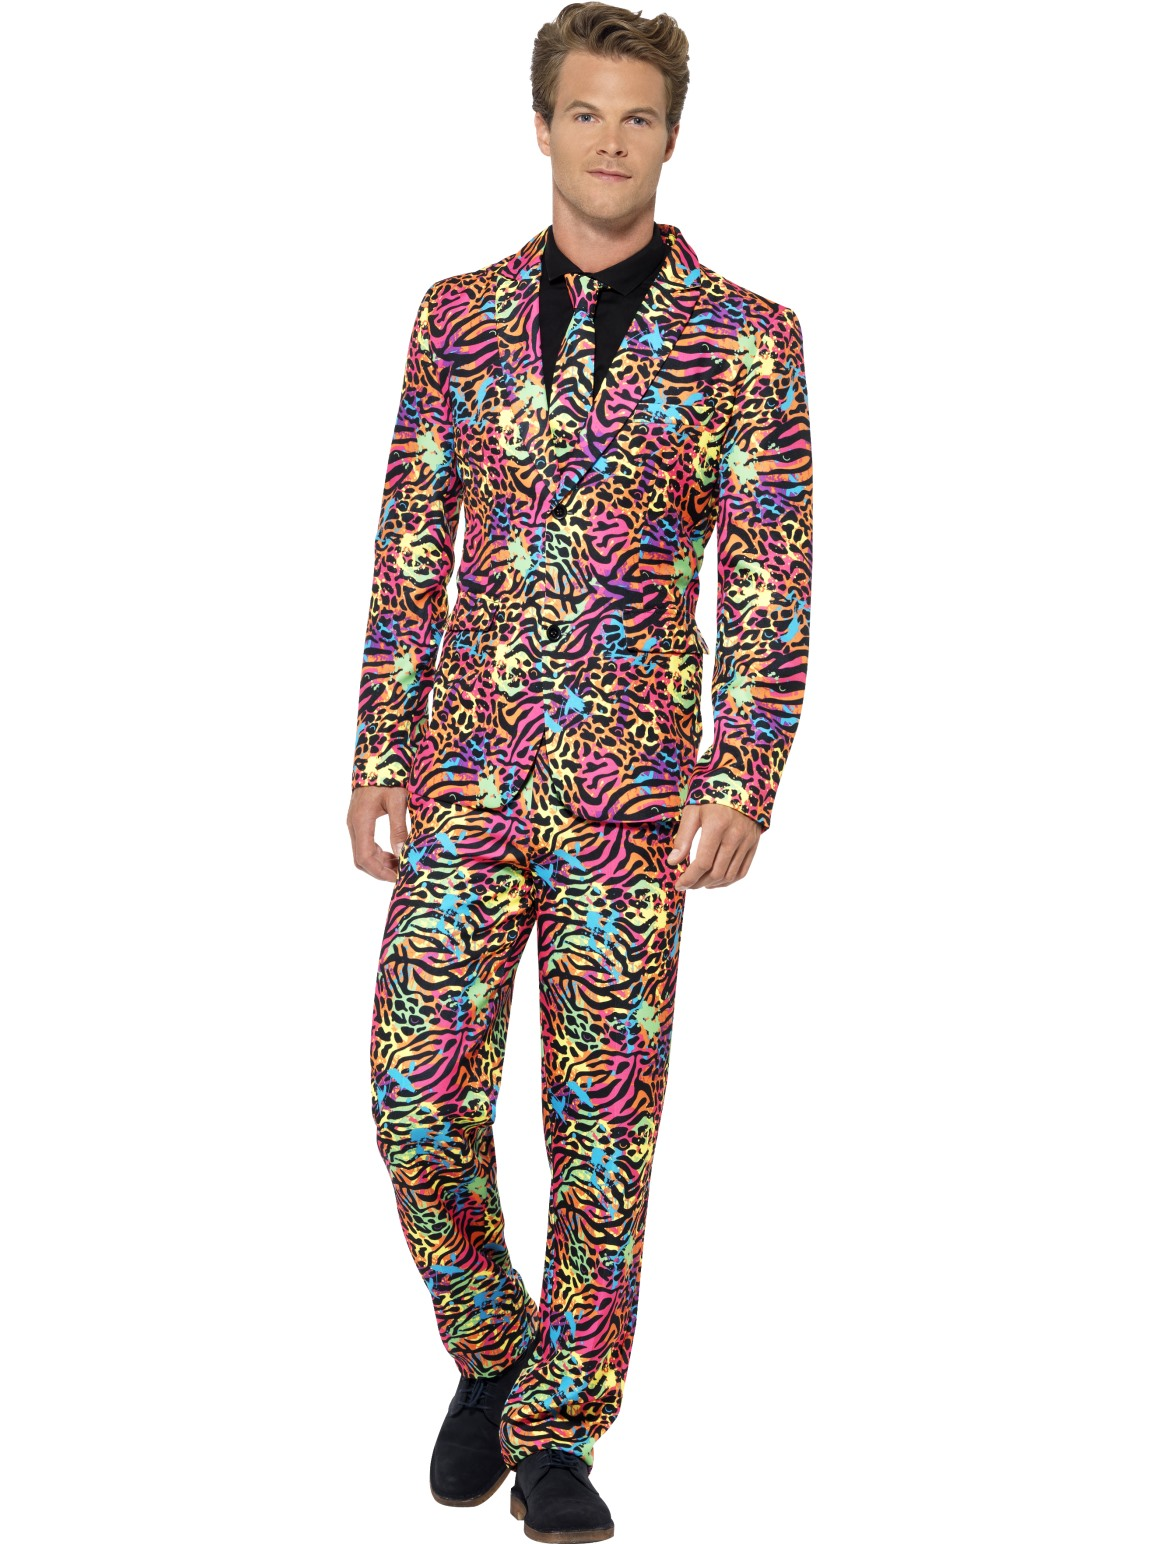 Mens Stand Out Neon Suit Tiger Stag Do Halloween Costume Party Funny Fancy Dress